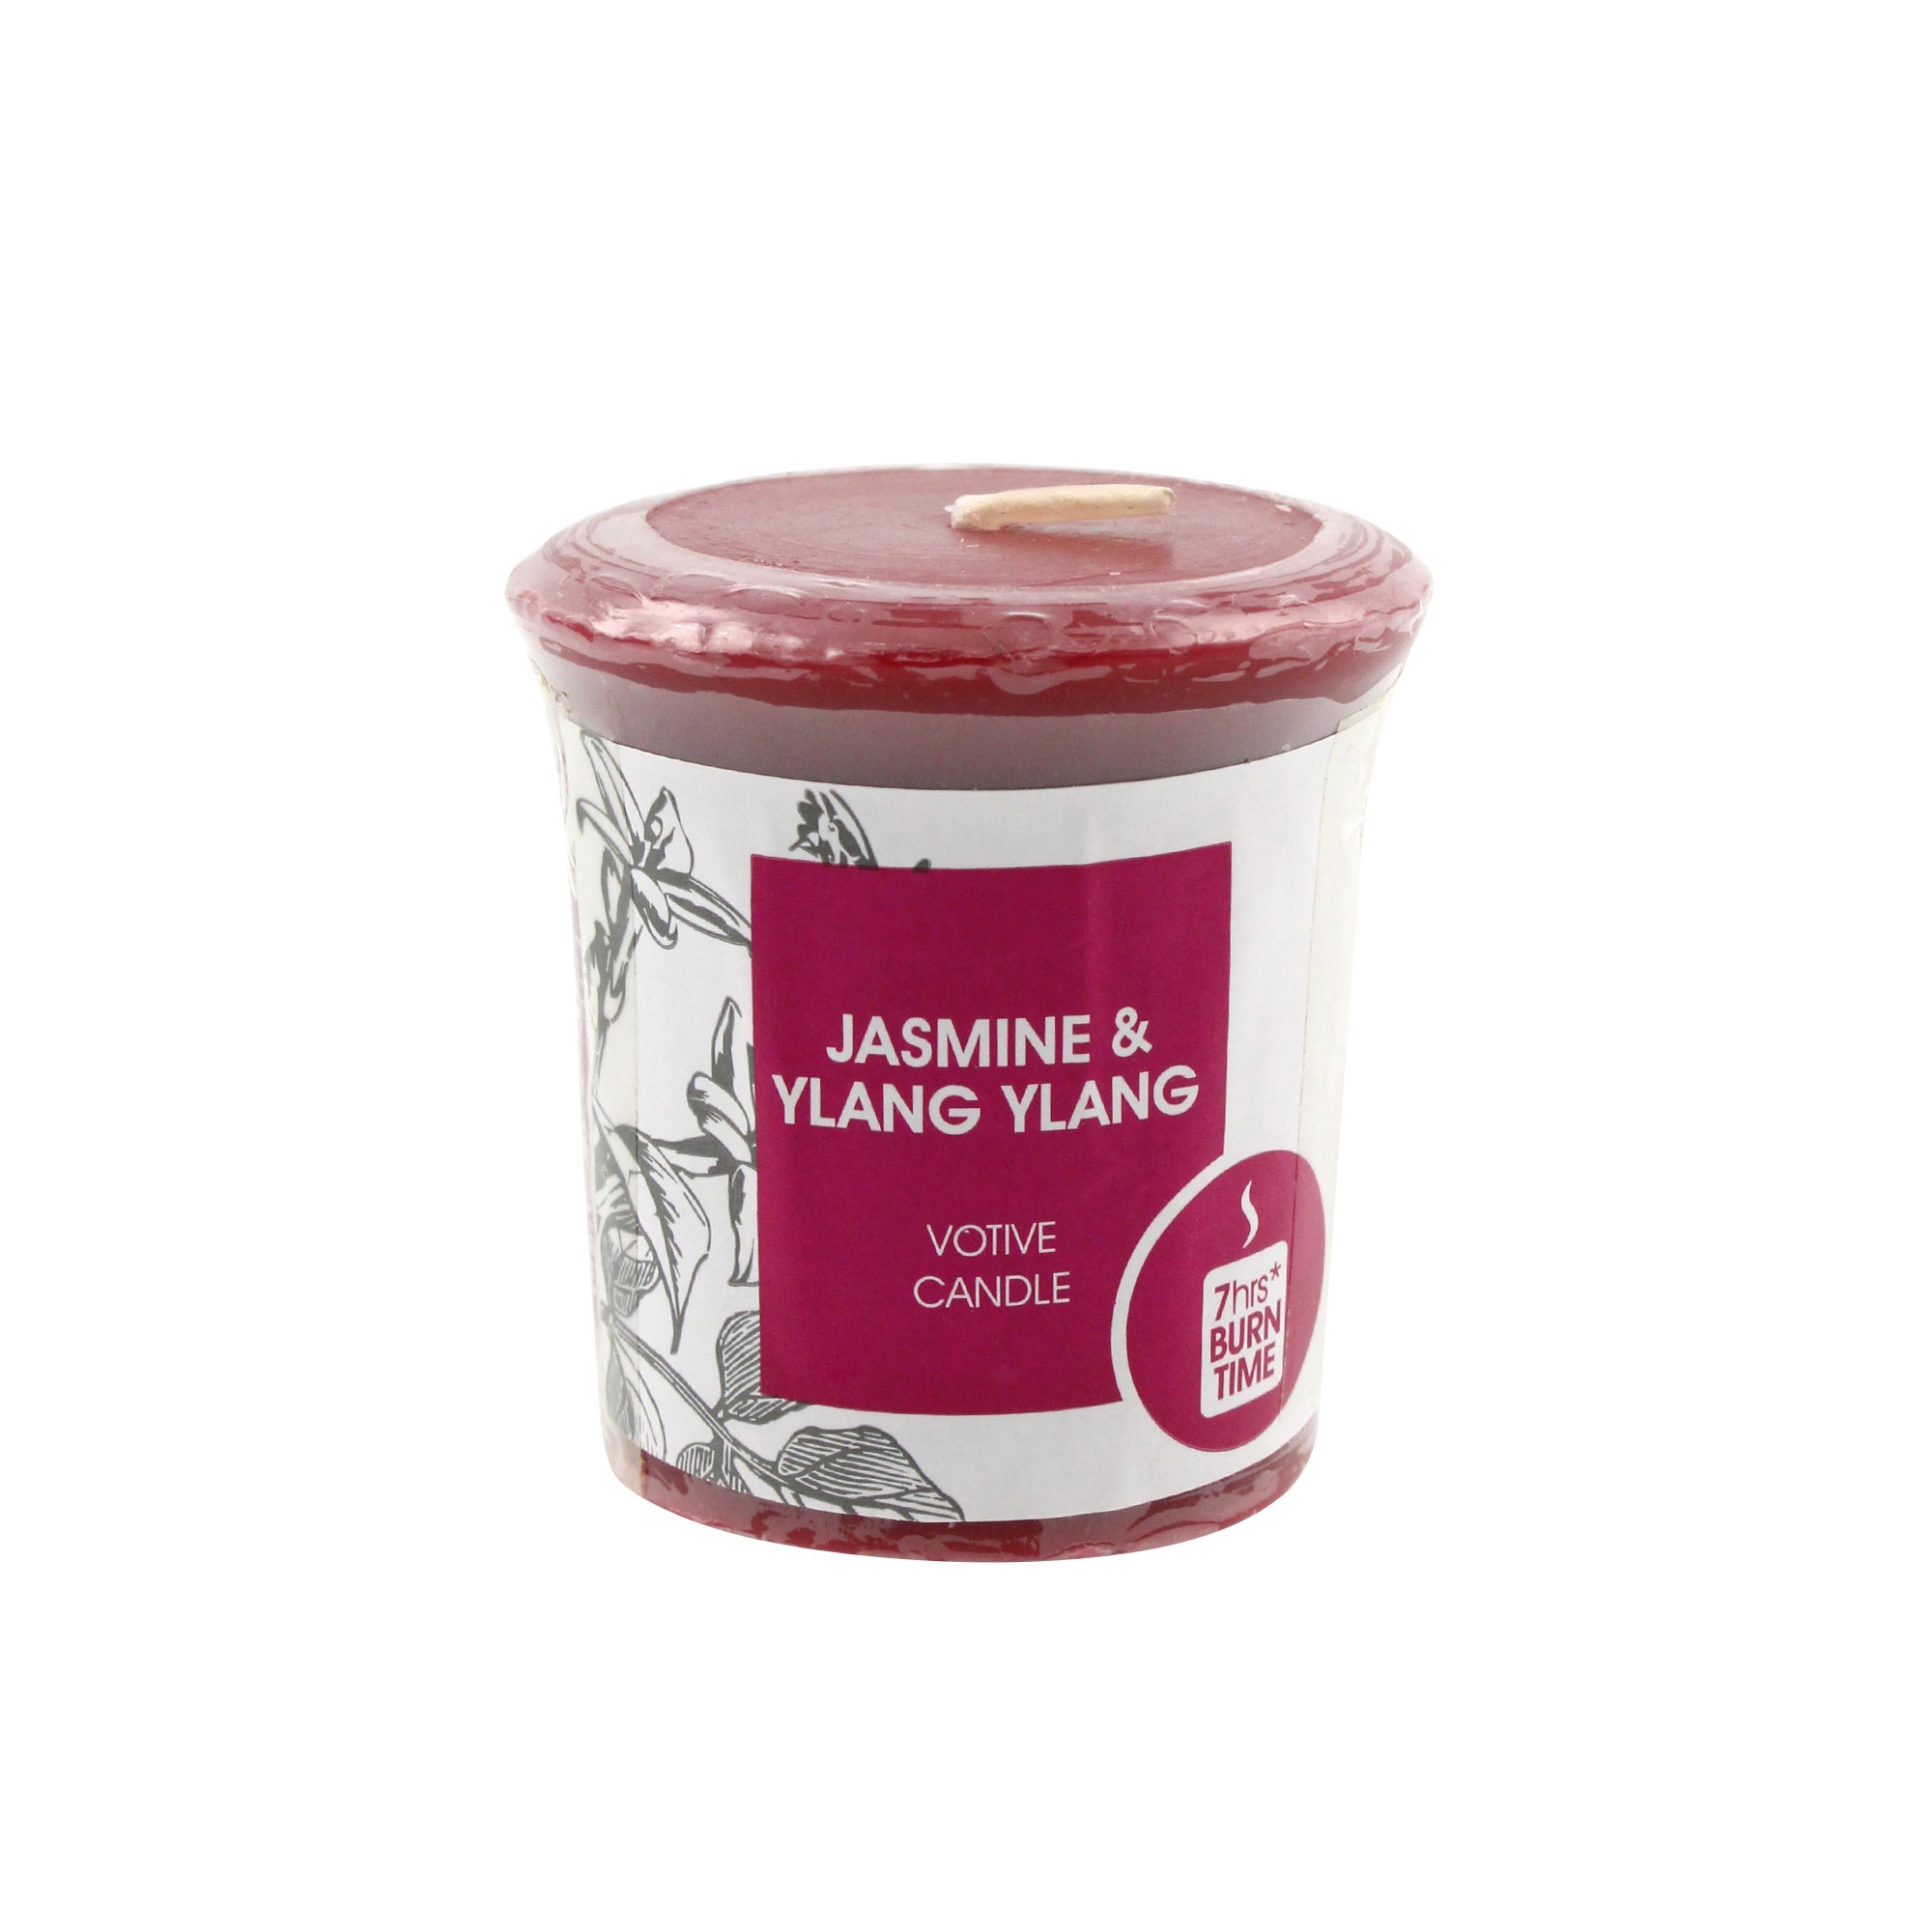 Jasmine and Ylang Ylang Votive Candle